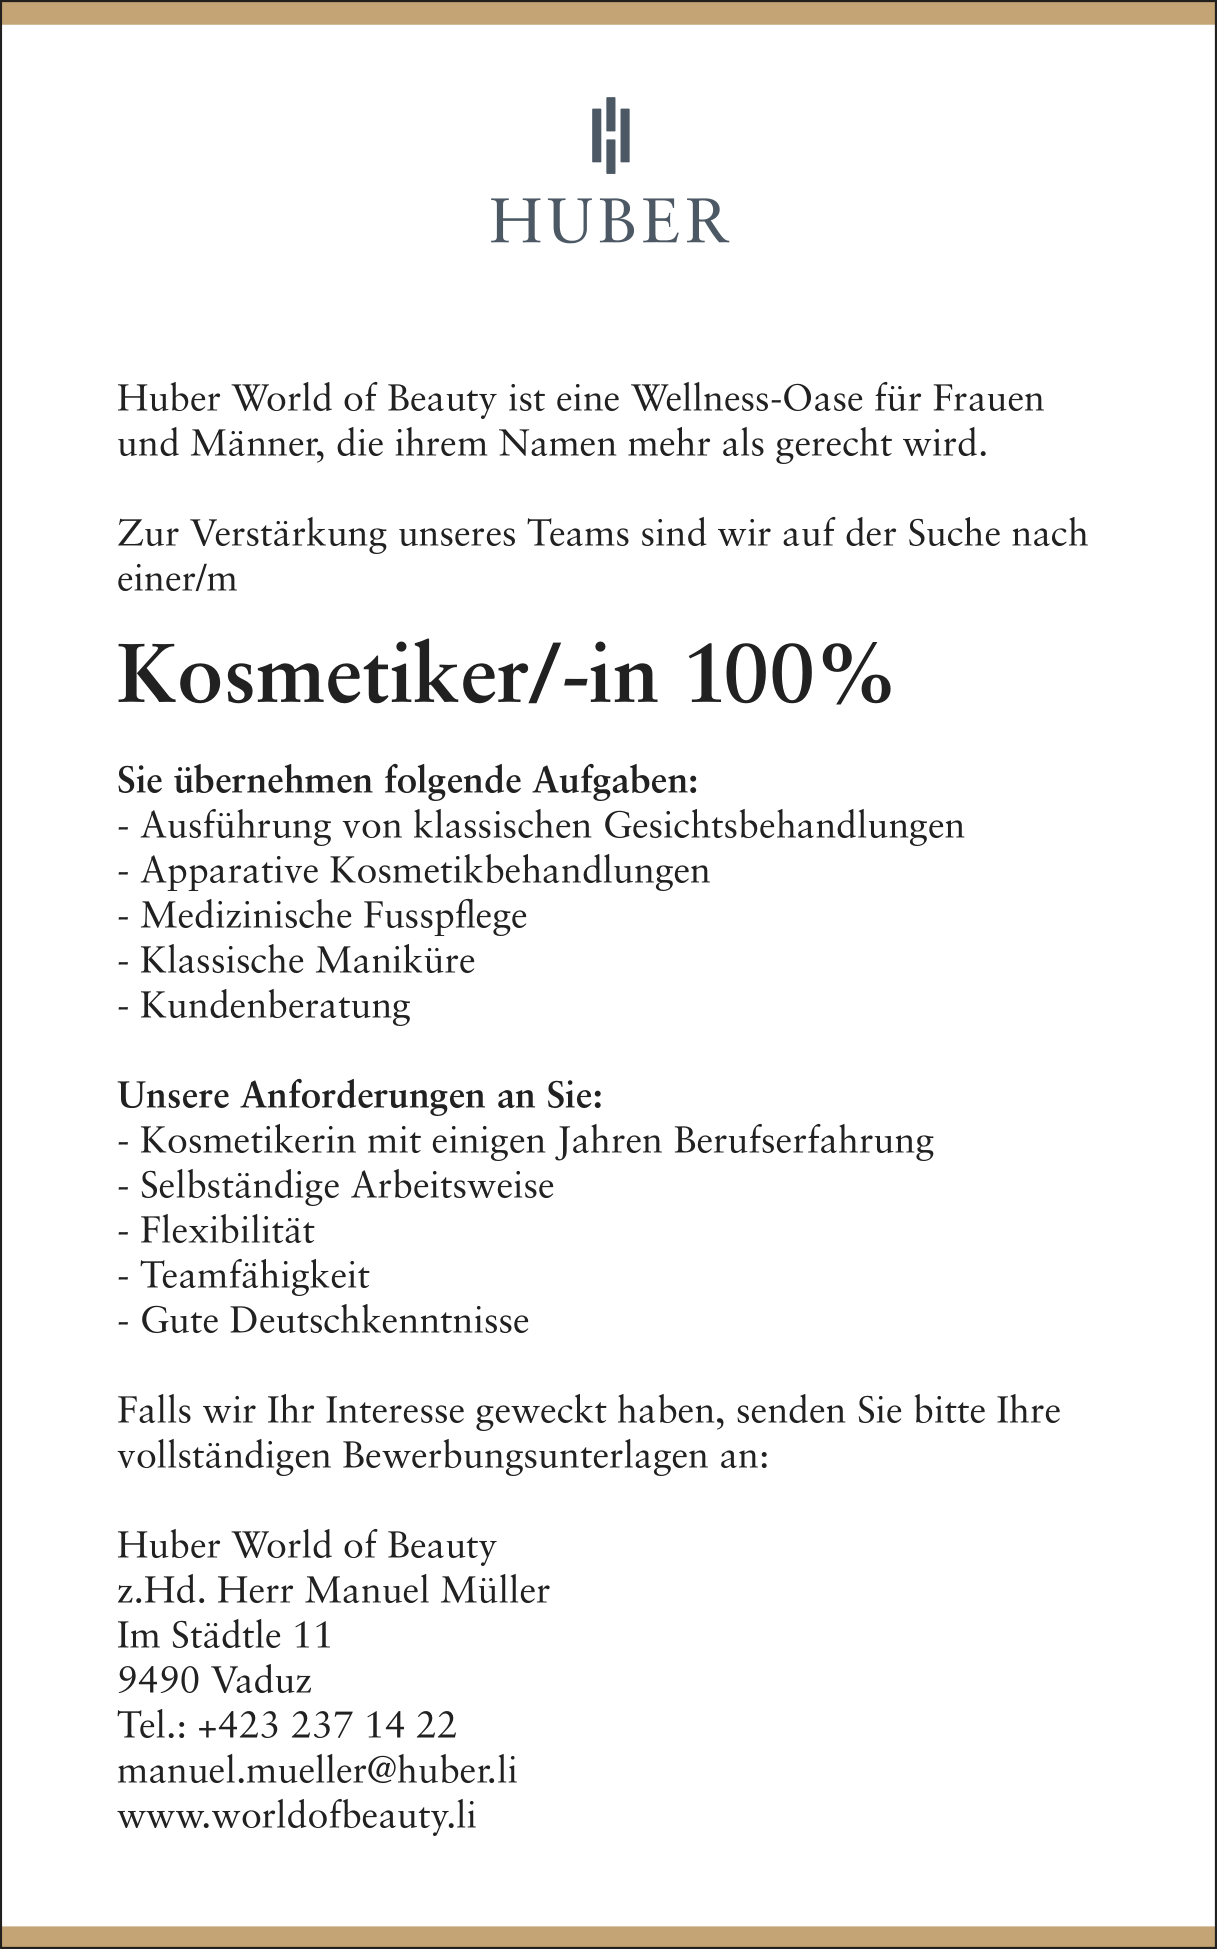 Kosmetiker/-in 100% bei Huber World of Beauty in Vaduz